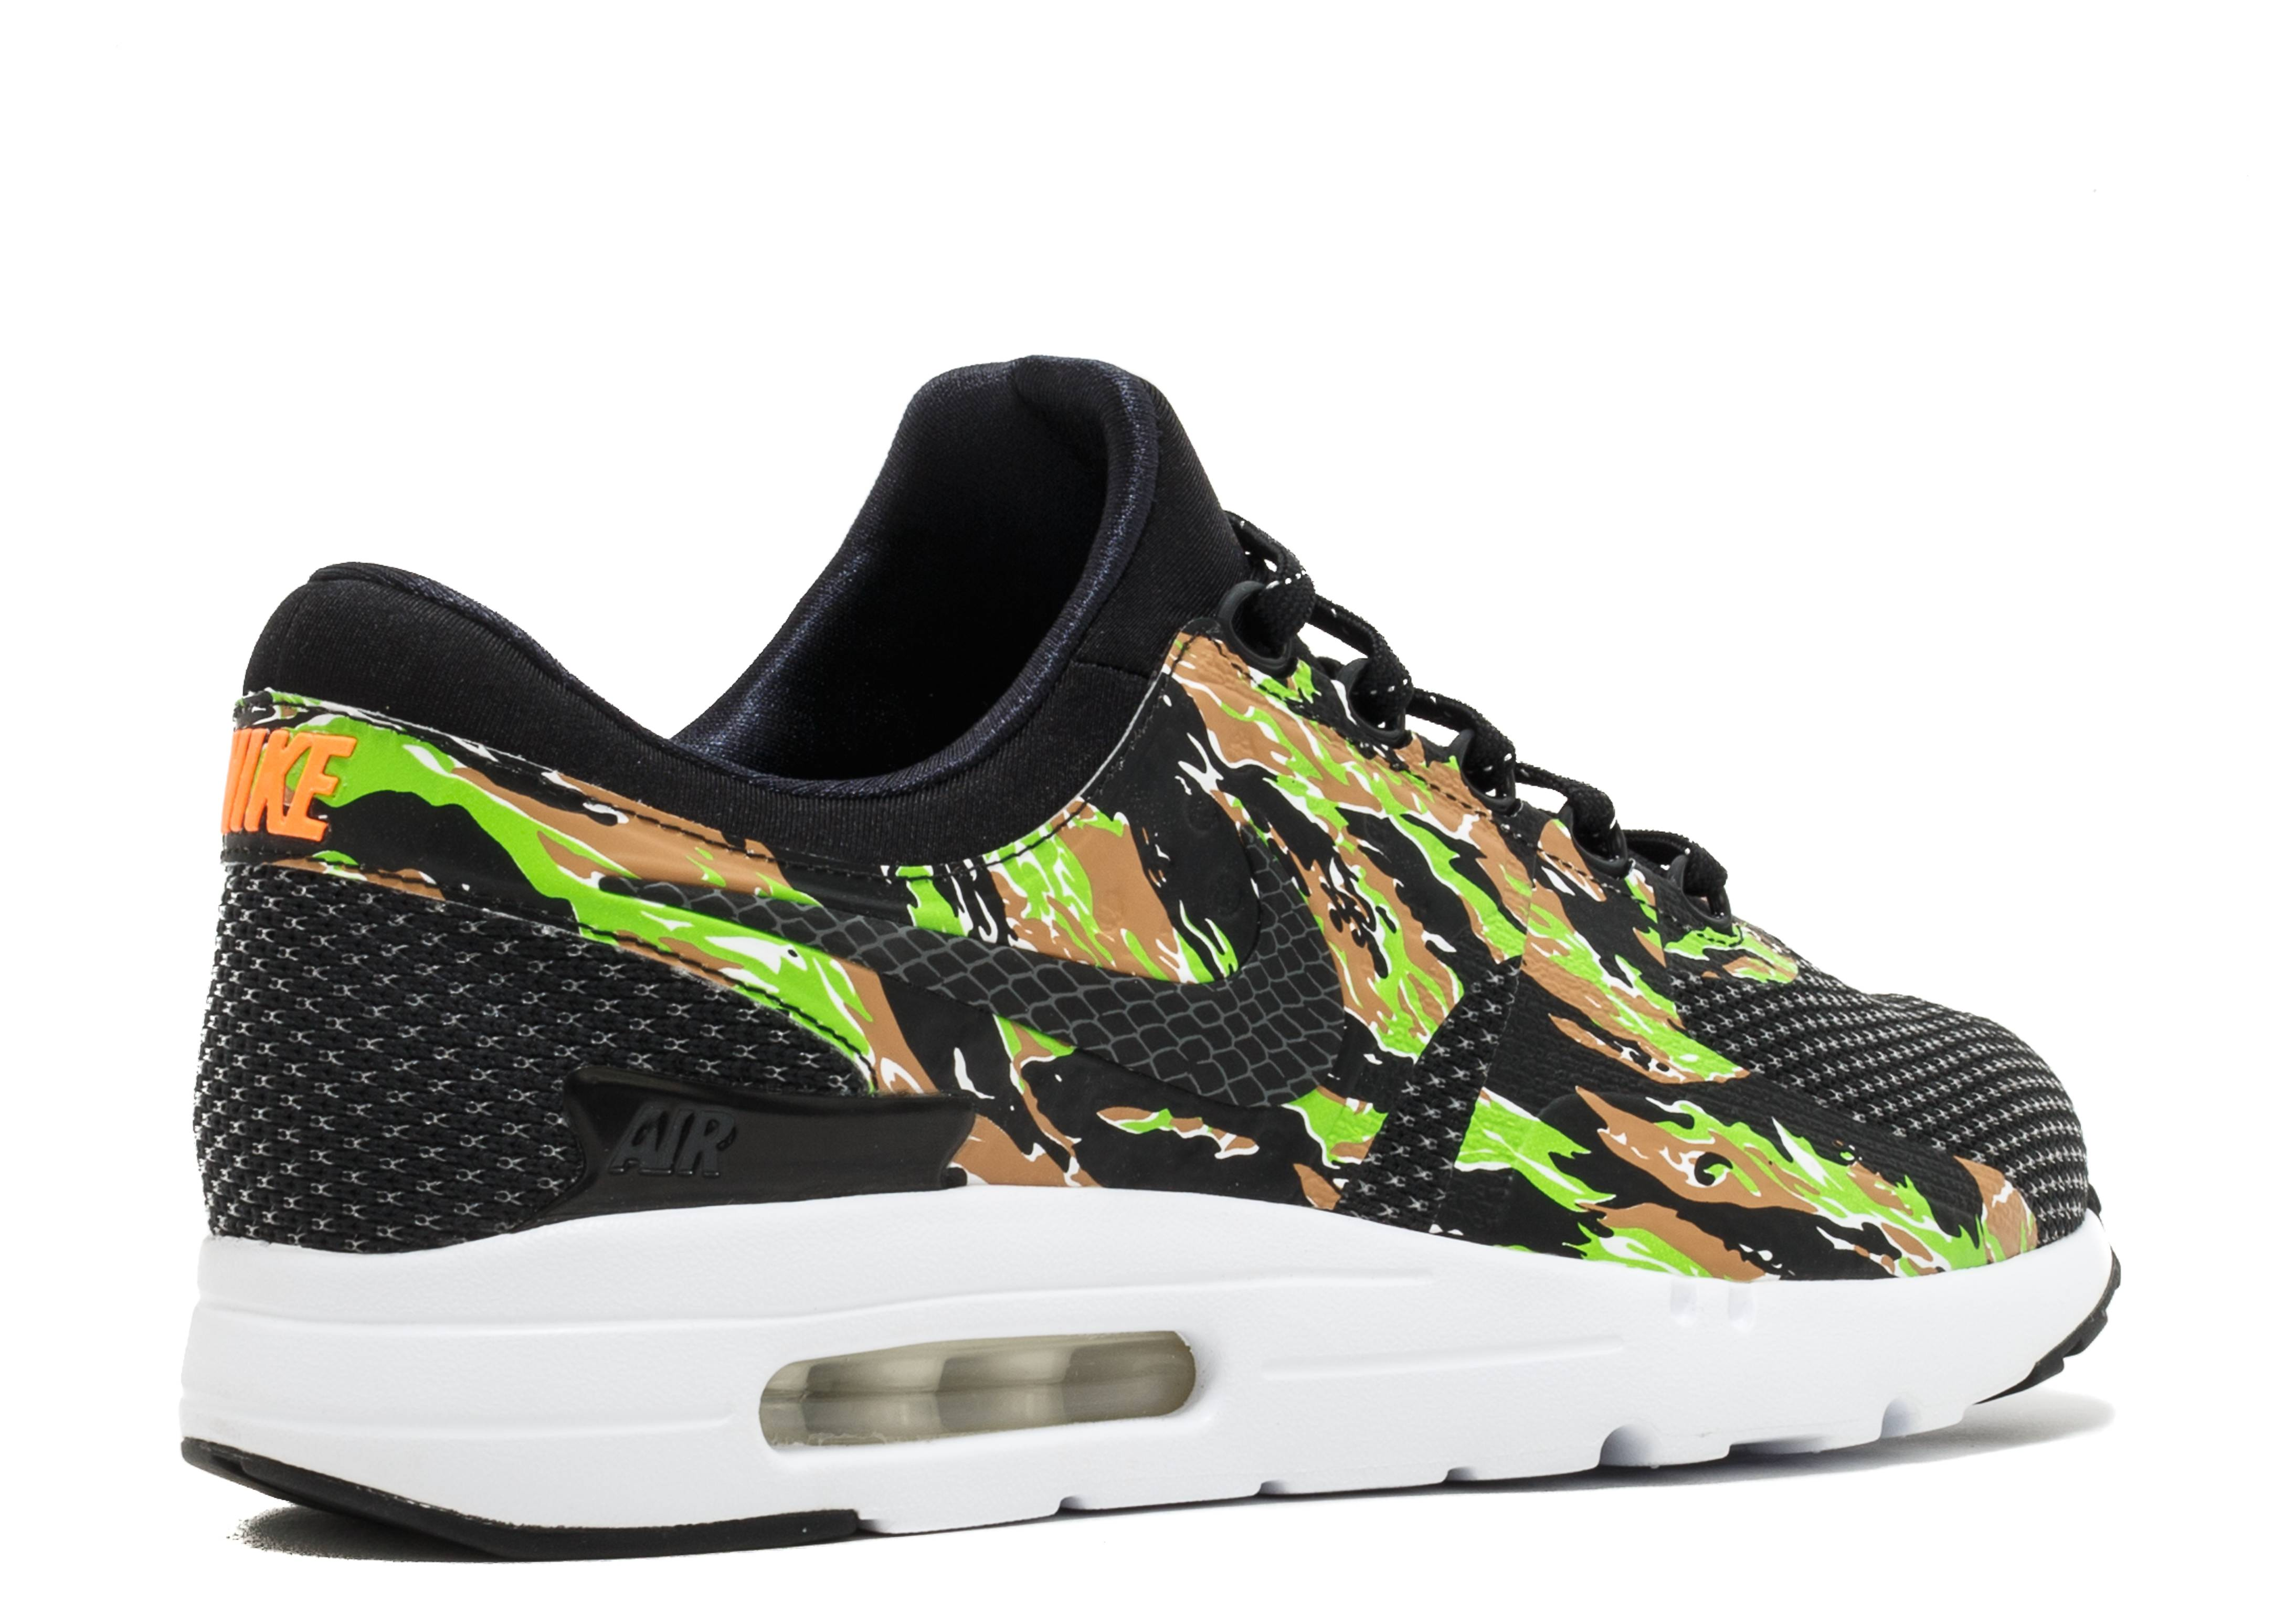 air max zero jp id tiger camo nike ah1809 008. Black Bedroom Furniture Sets. Home Design Ideas